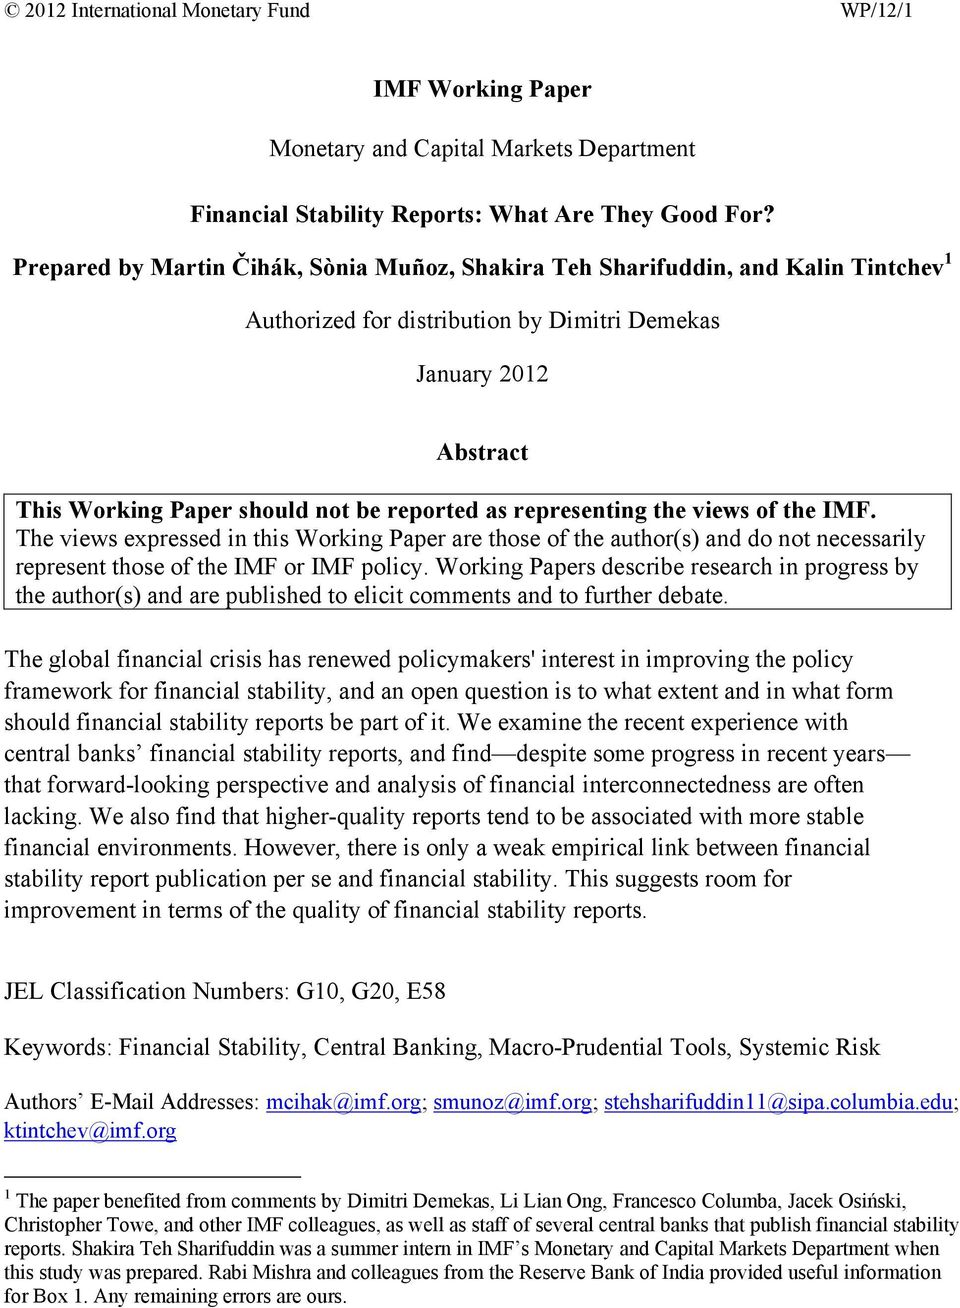 representing the views of the IMF. The views expressed in this Working Paper are those of the author(s) and do not necessarily represent those of the IMF or IMF policy.